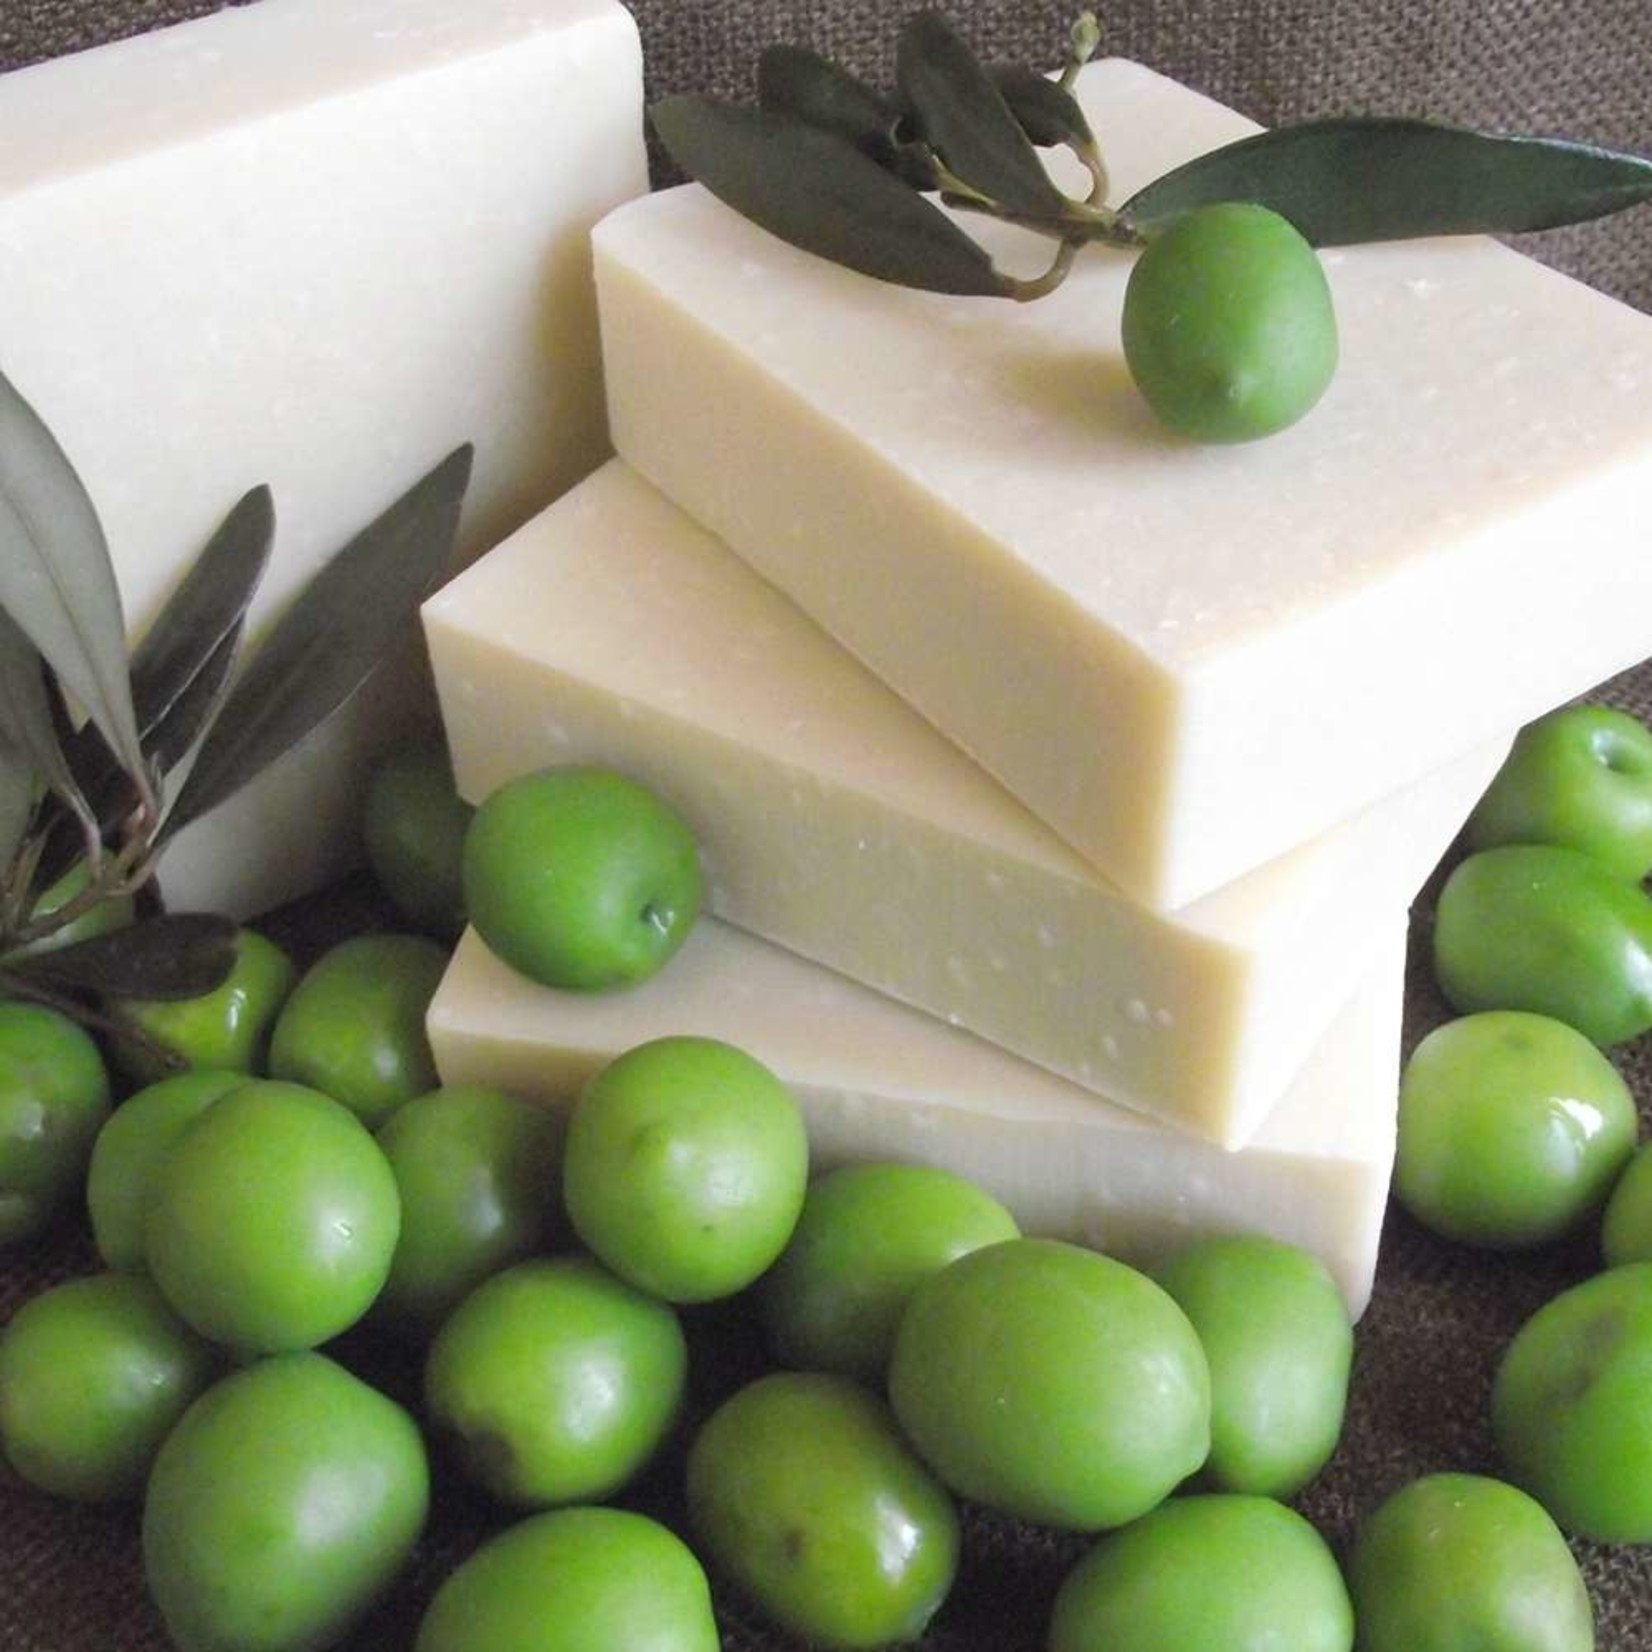 Chagrin Valley Soap and Salve Simply Castile 5.8oz Soap Bar